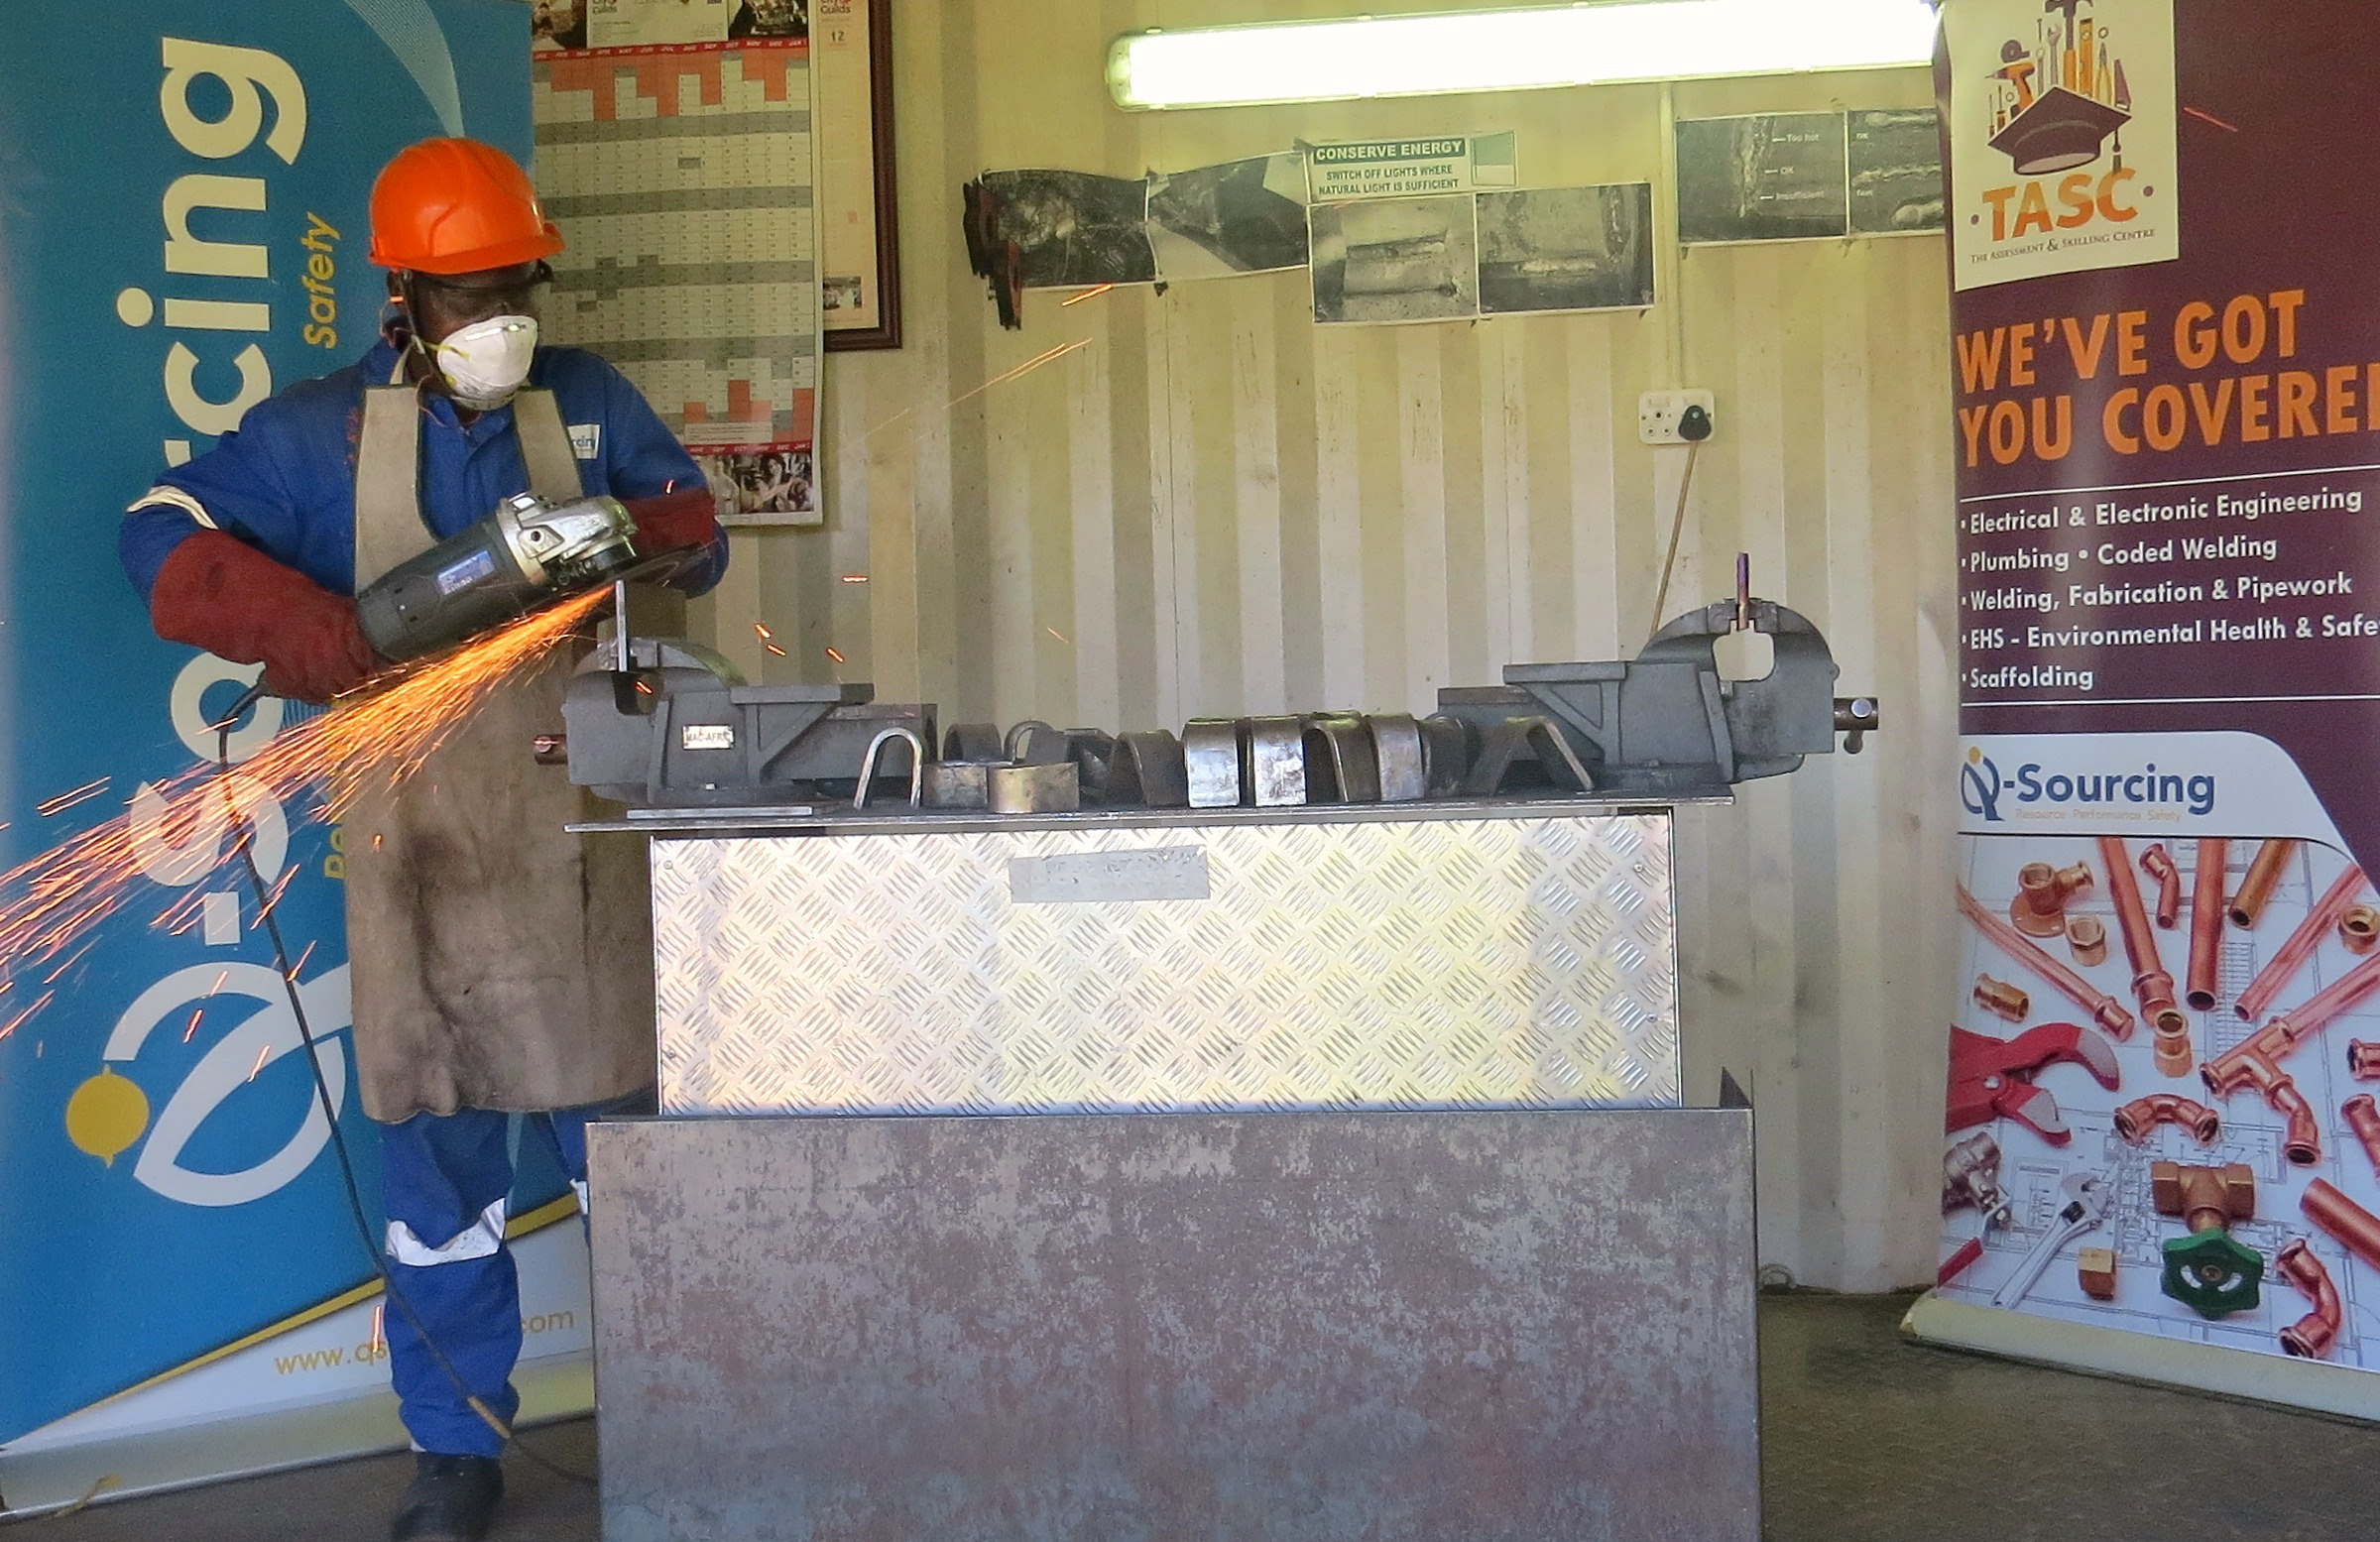 4 quick factory safety tips